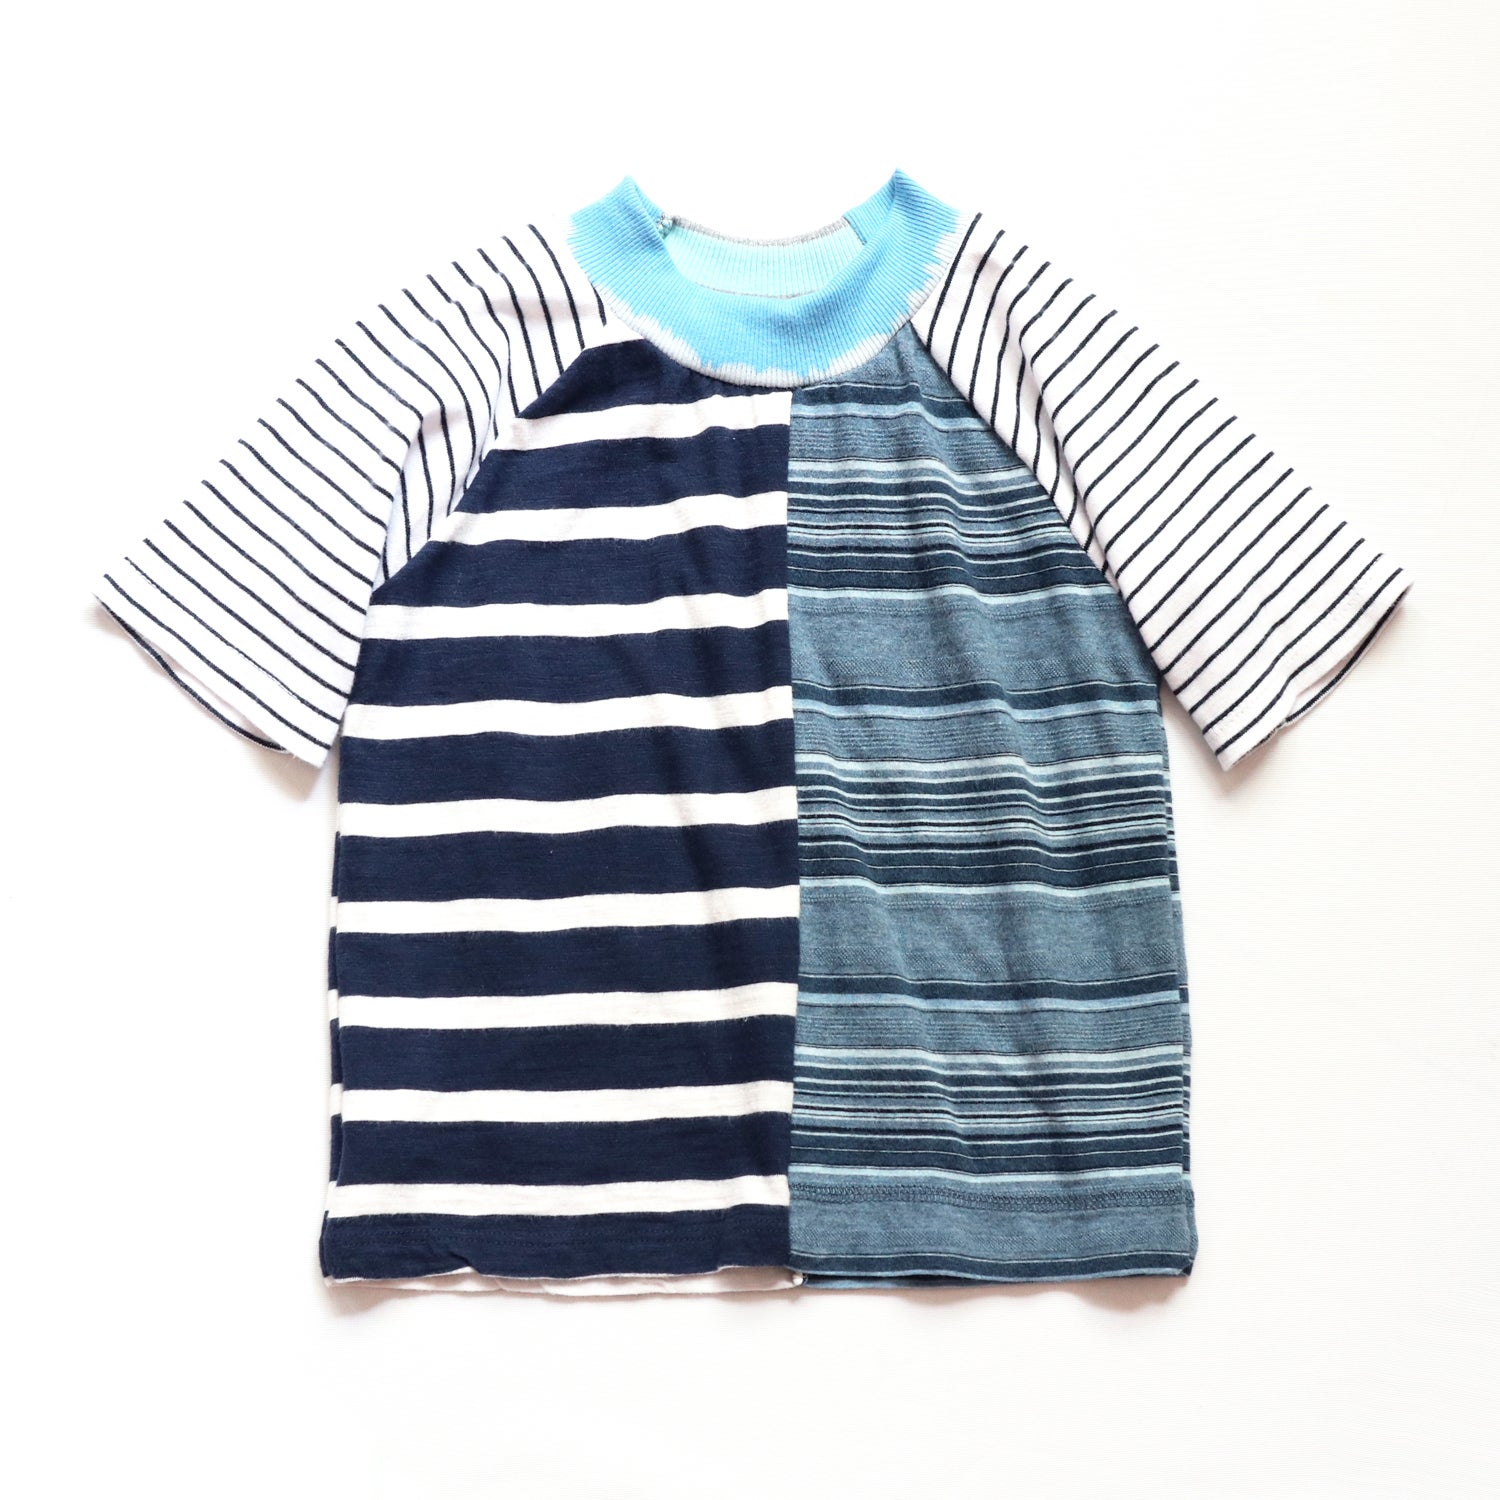 Image of blue superstripe stripes 4T The courtneycourtney TEE shirt unisex top patchwork boys tshirt tees eco